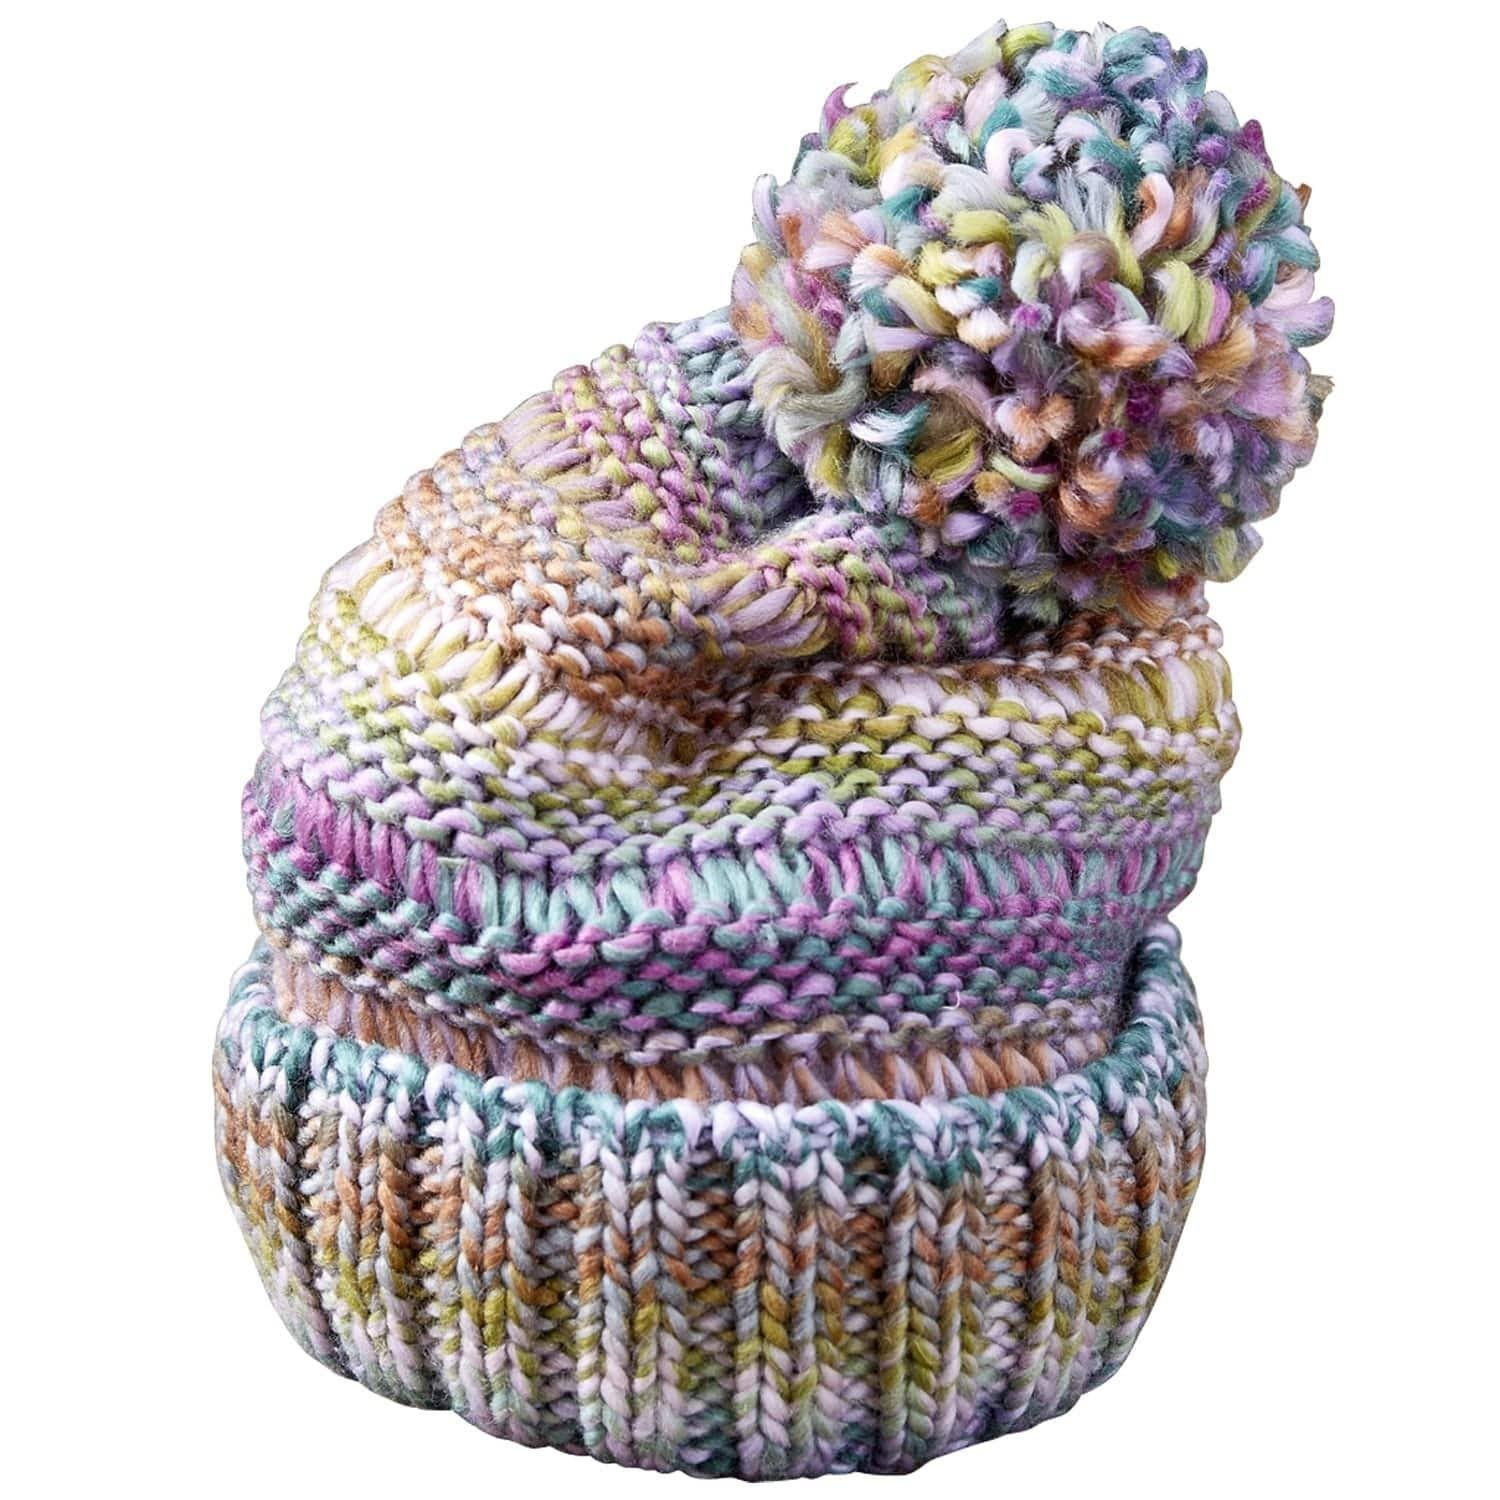 Tickled Pink Ombre Knit Lavender Multicolored One Size Beanie Hat, Women's, Multi-color